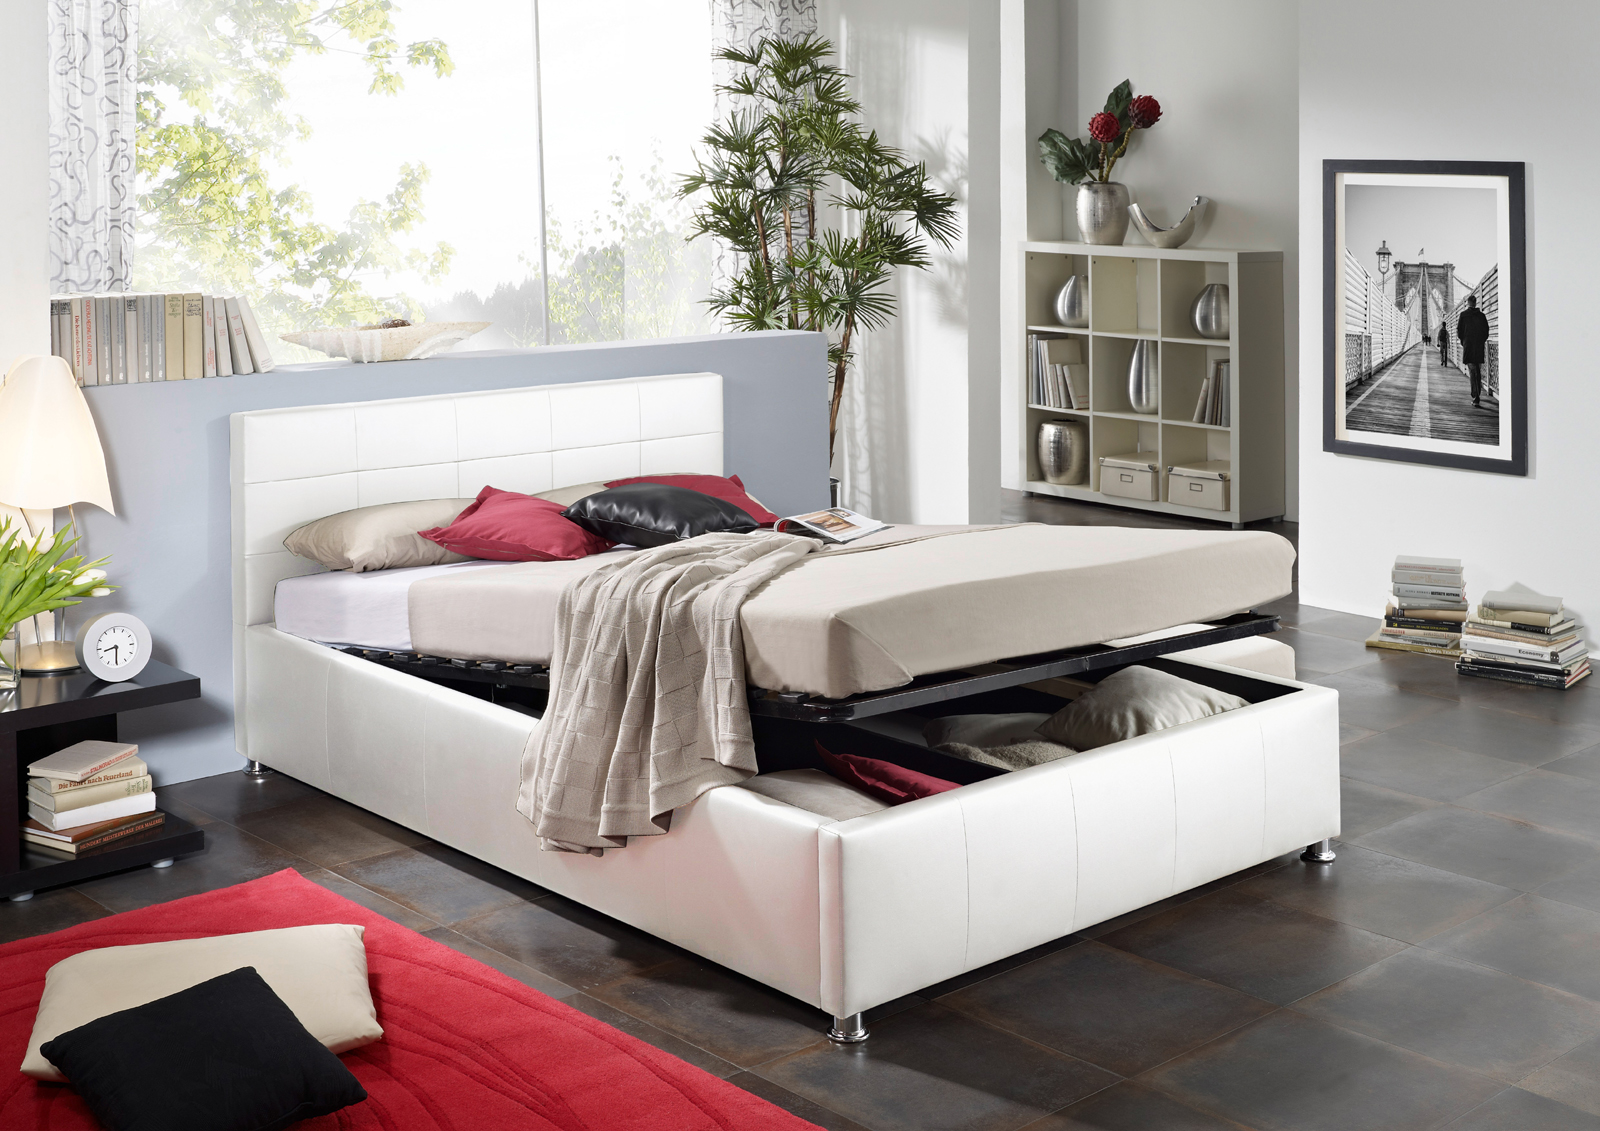 sam design bett 180 x 200 cm wei kira bettkasten auf lager. Black Bedroom Furniture Sets. Home Design Ideas